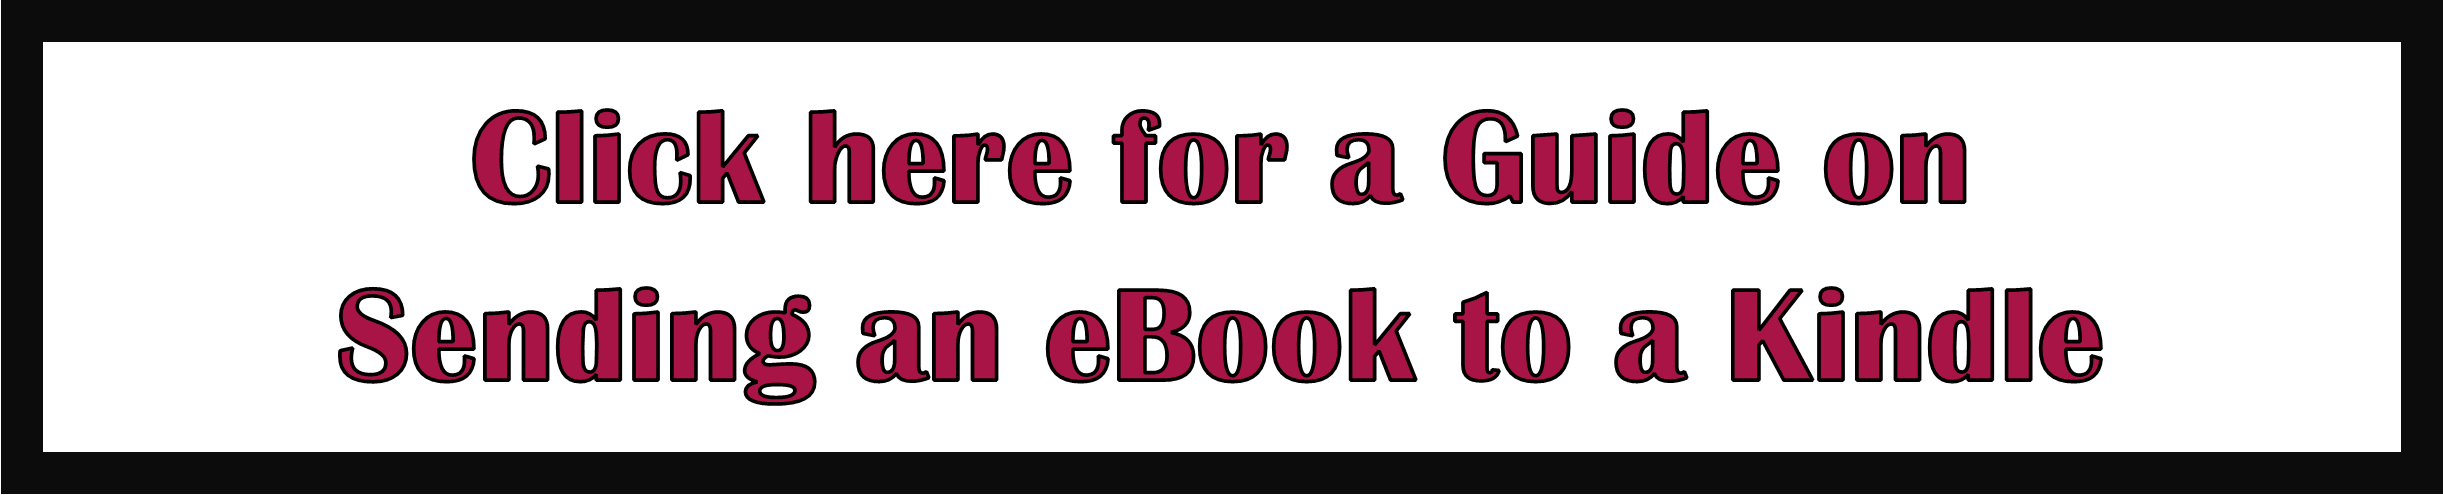 Click for Sending an eBook to a Kindle Guide Opens in new window